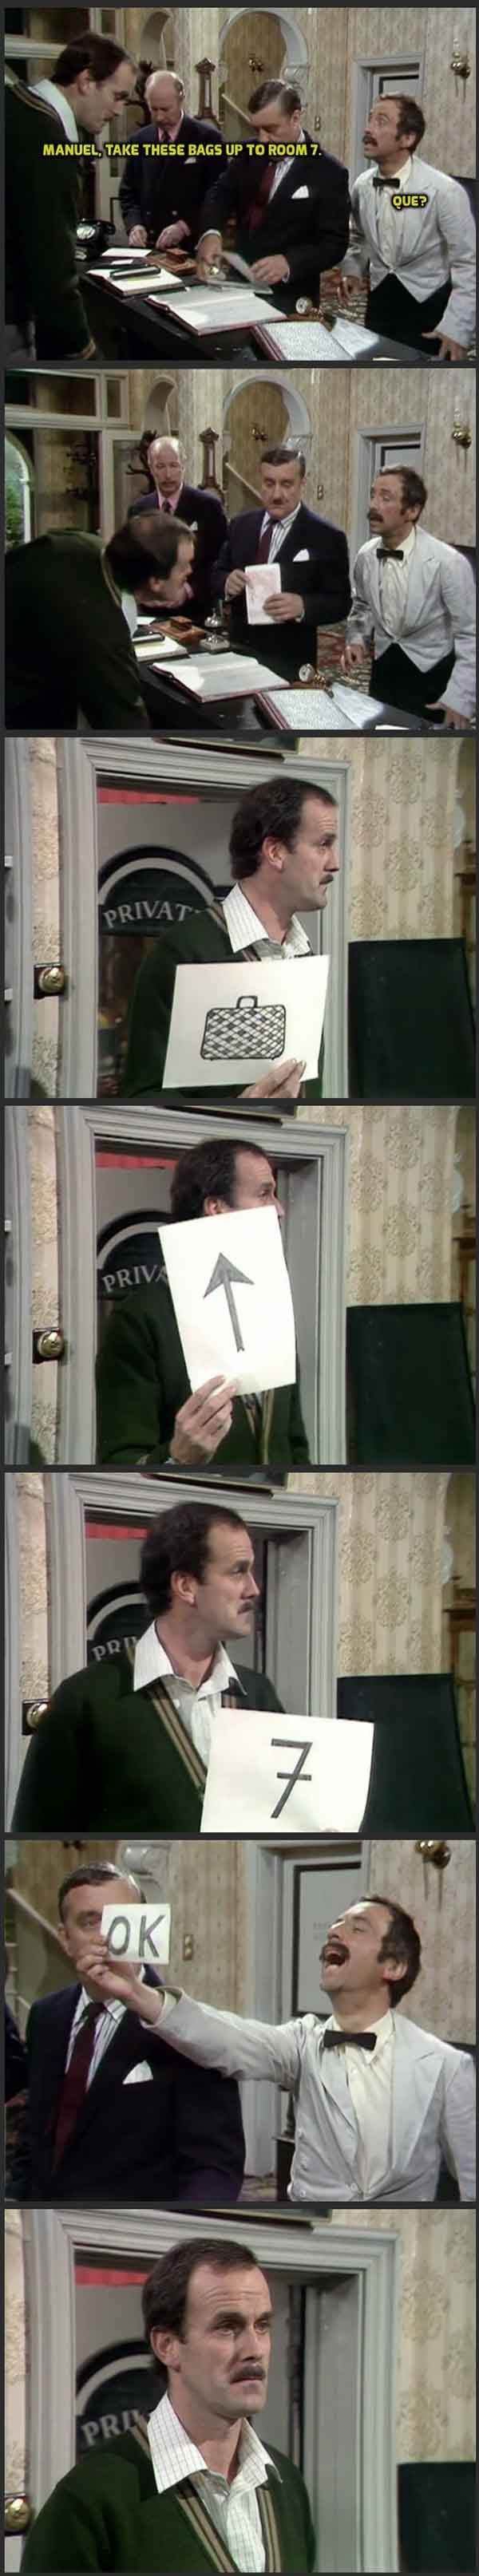 Fawlty Towers is one of my favorites of all time... // tags: funny pictures - funny photos - funny images - funny pics - funny quotes - #lol #humor #funnypictures